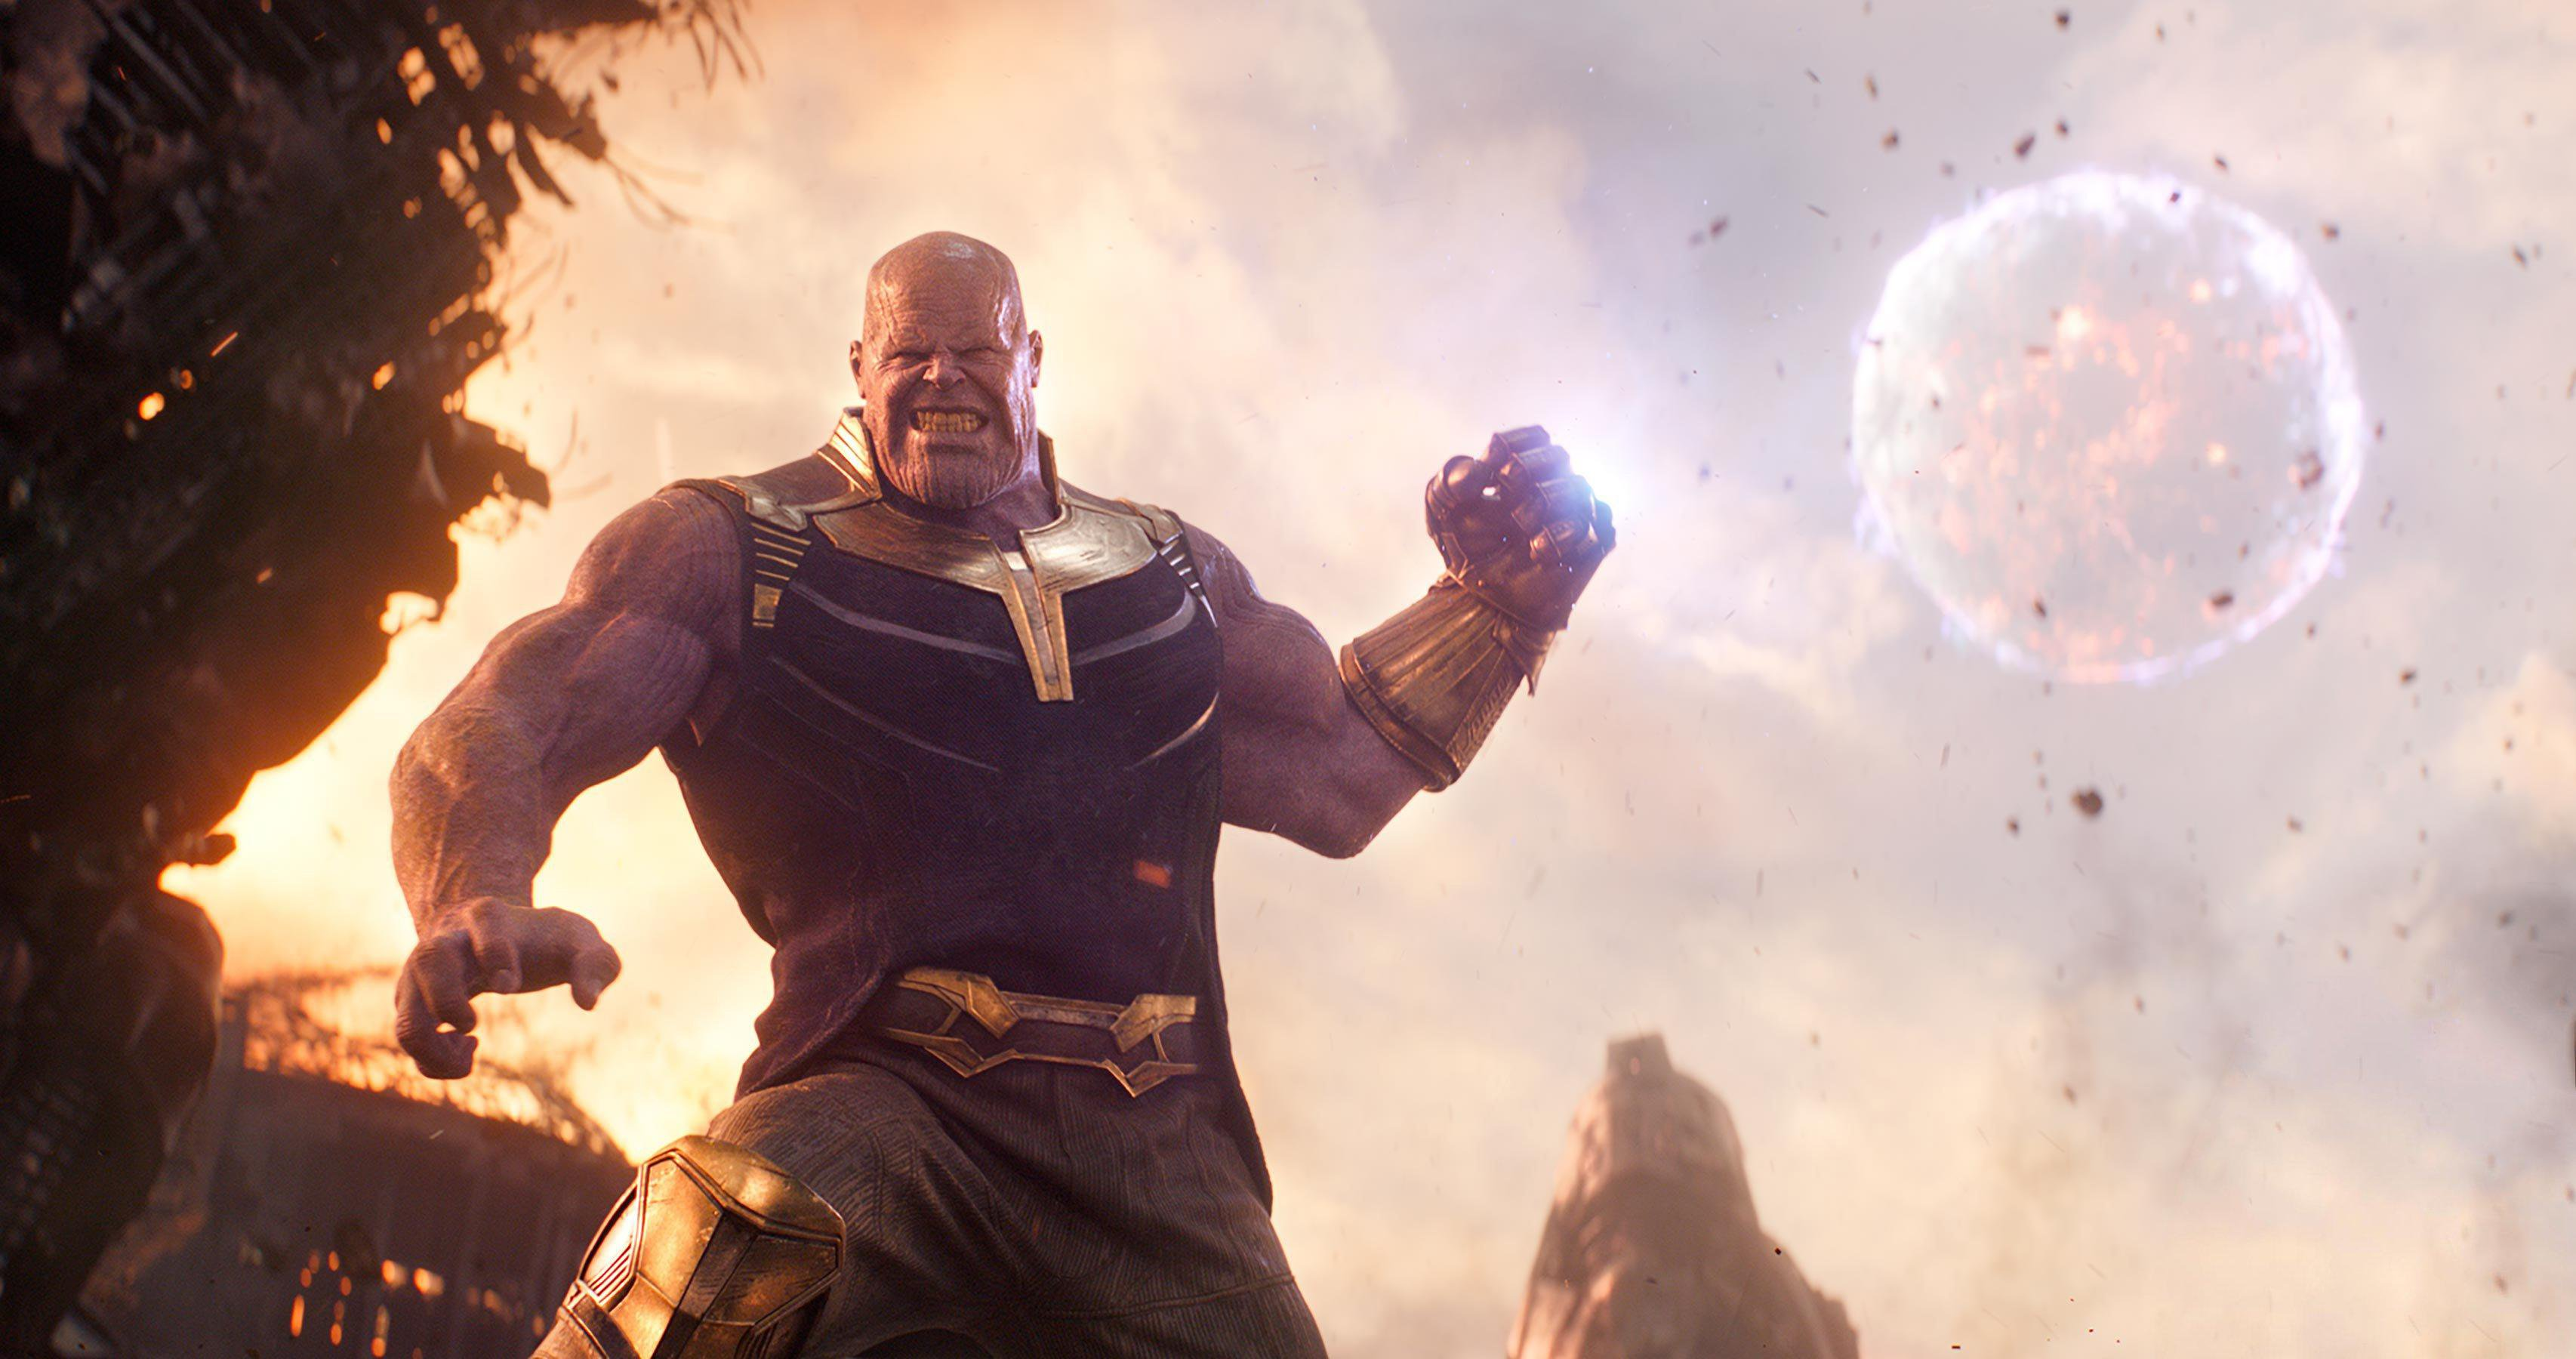 Avengers Infinity War Thanos Wallpaper 63589 3412x1800px